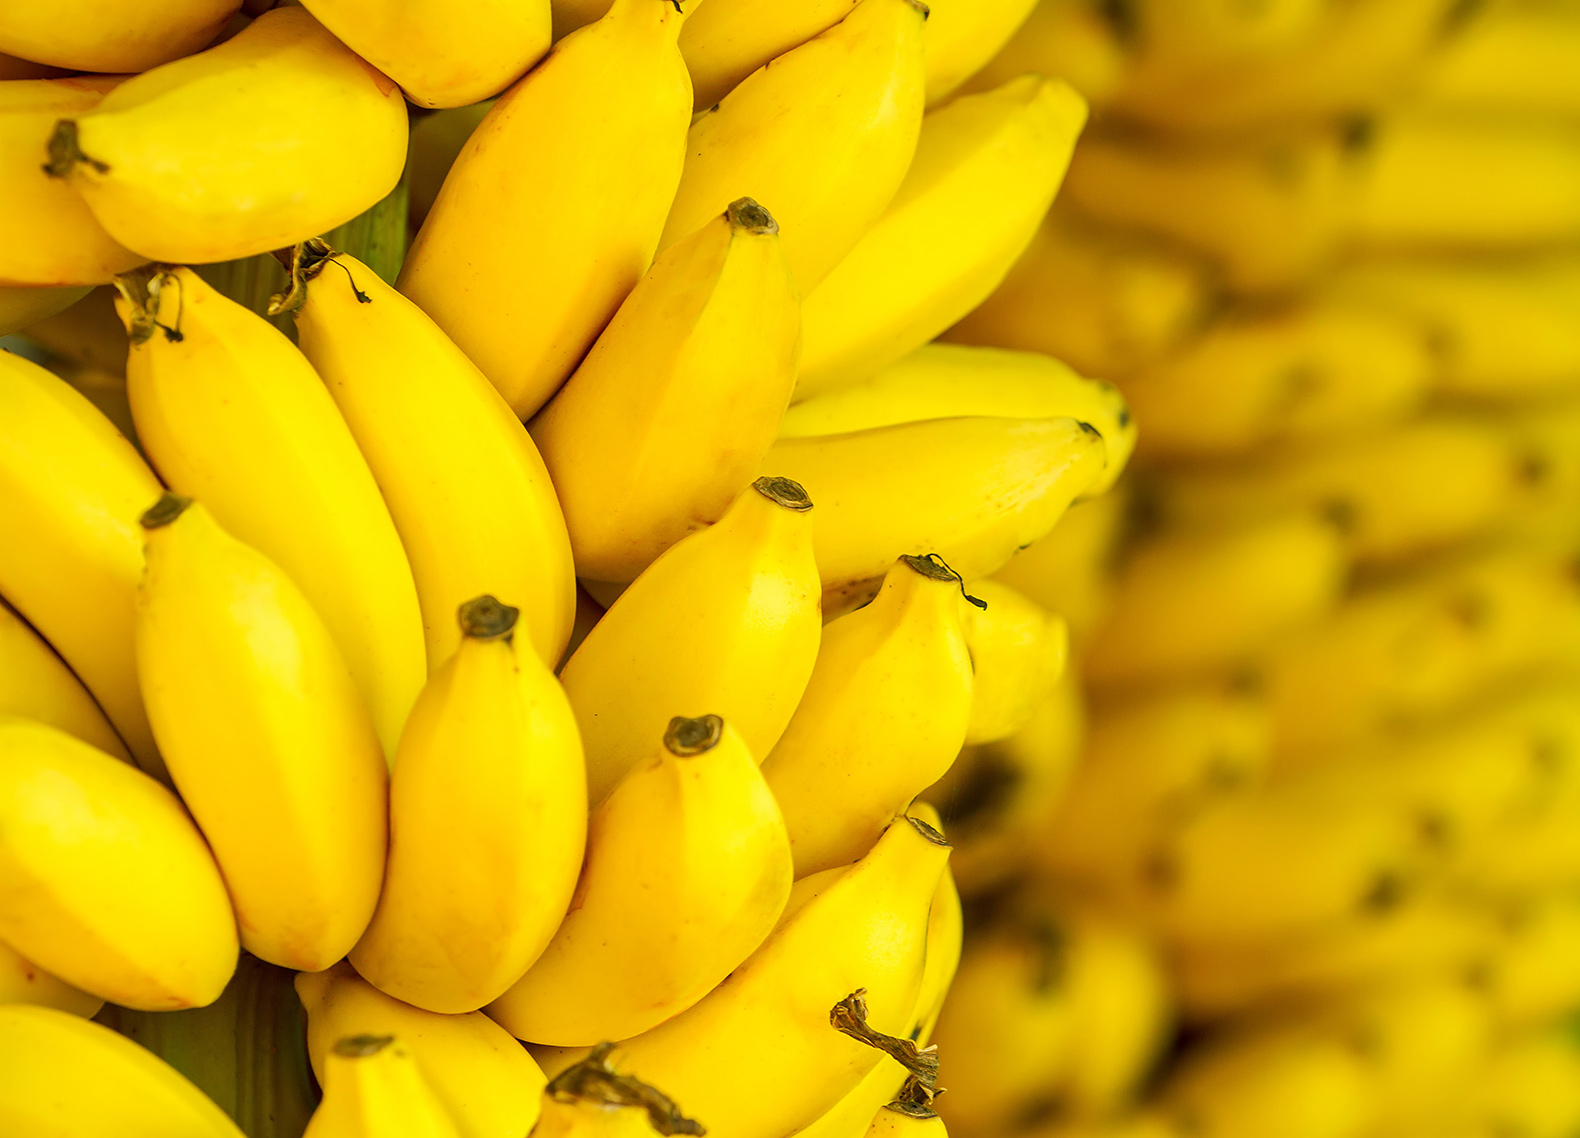 Japanese researchers create tasty new banana with a thin edible peel